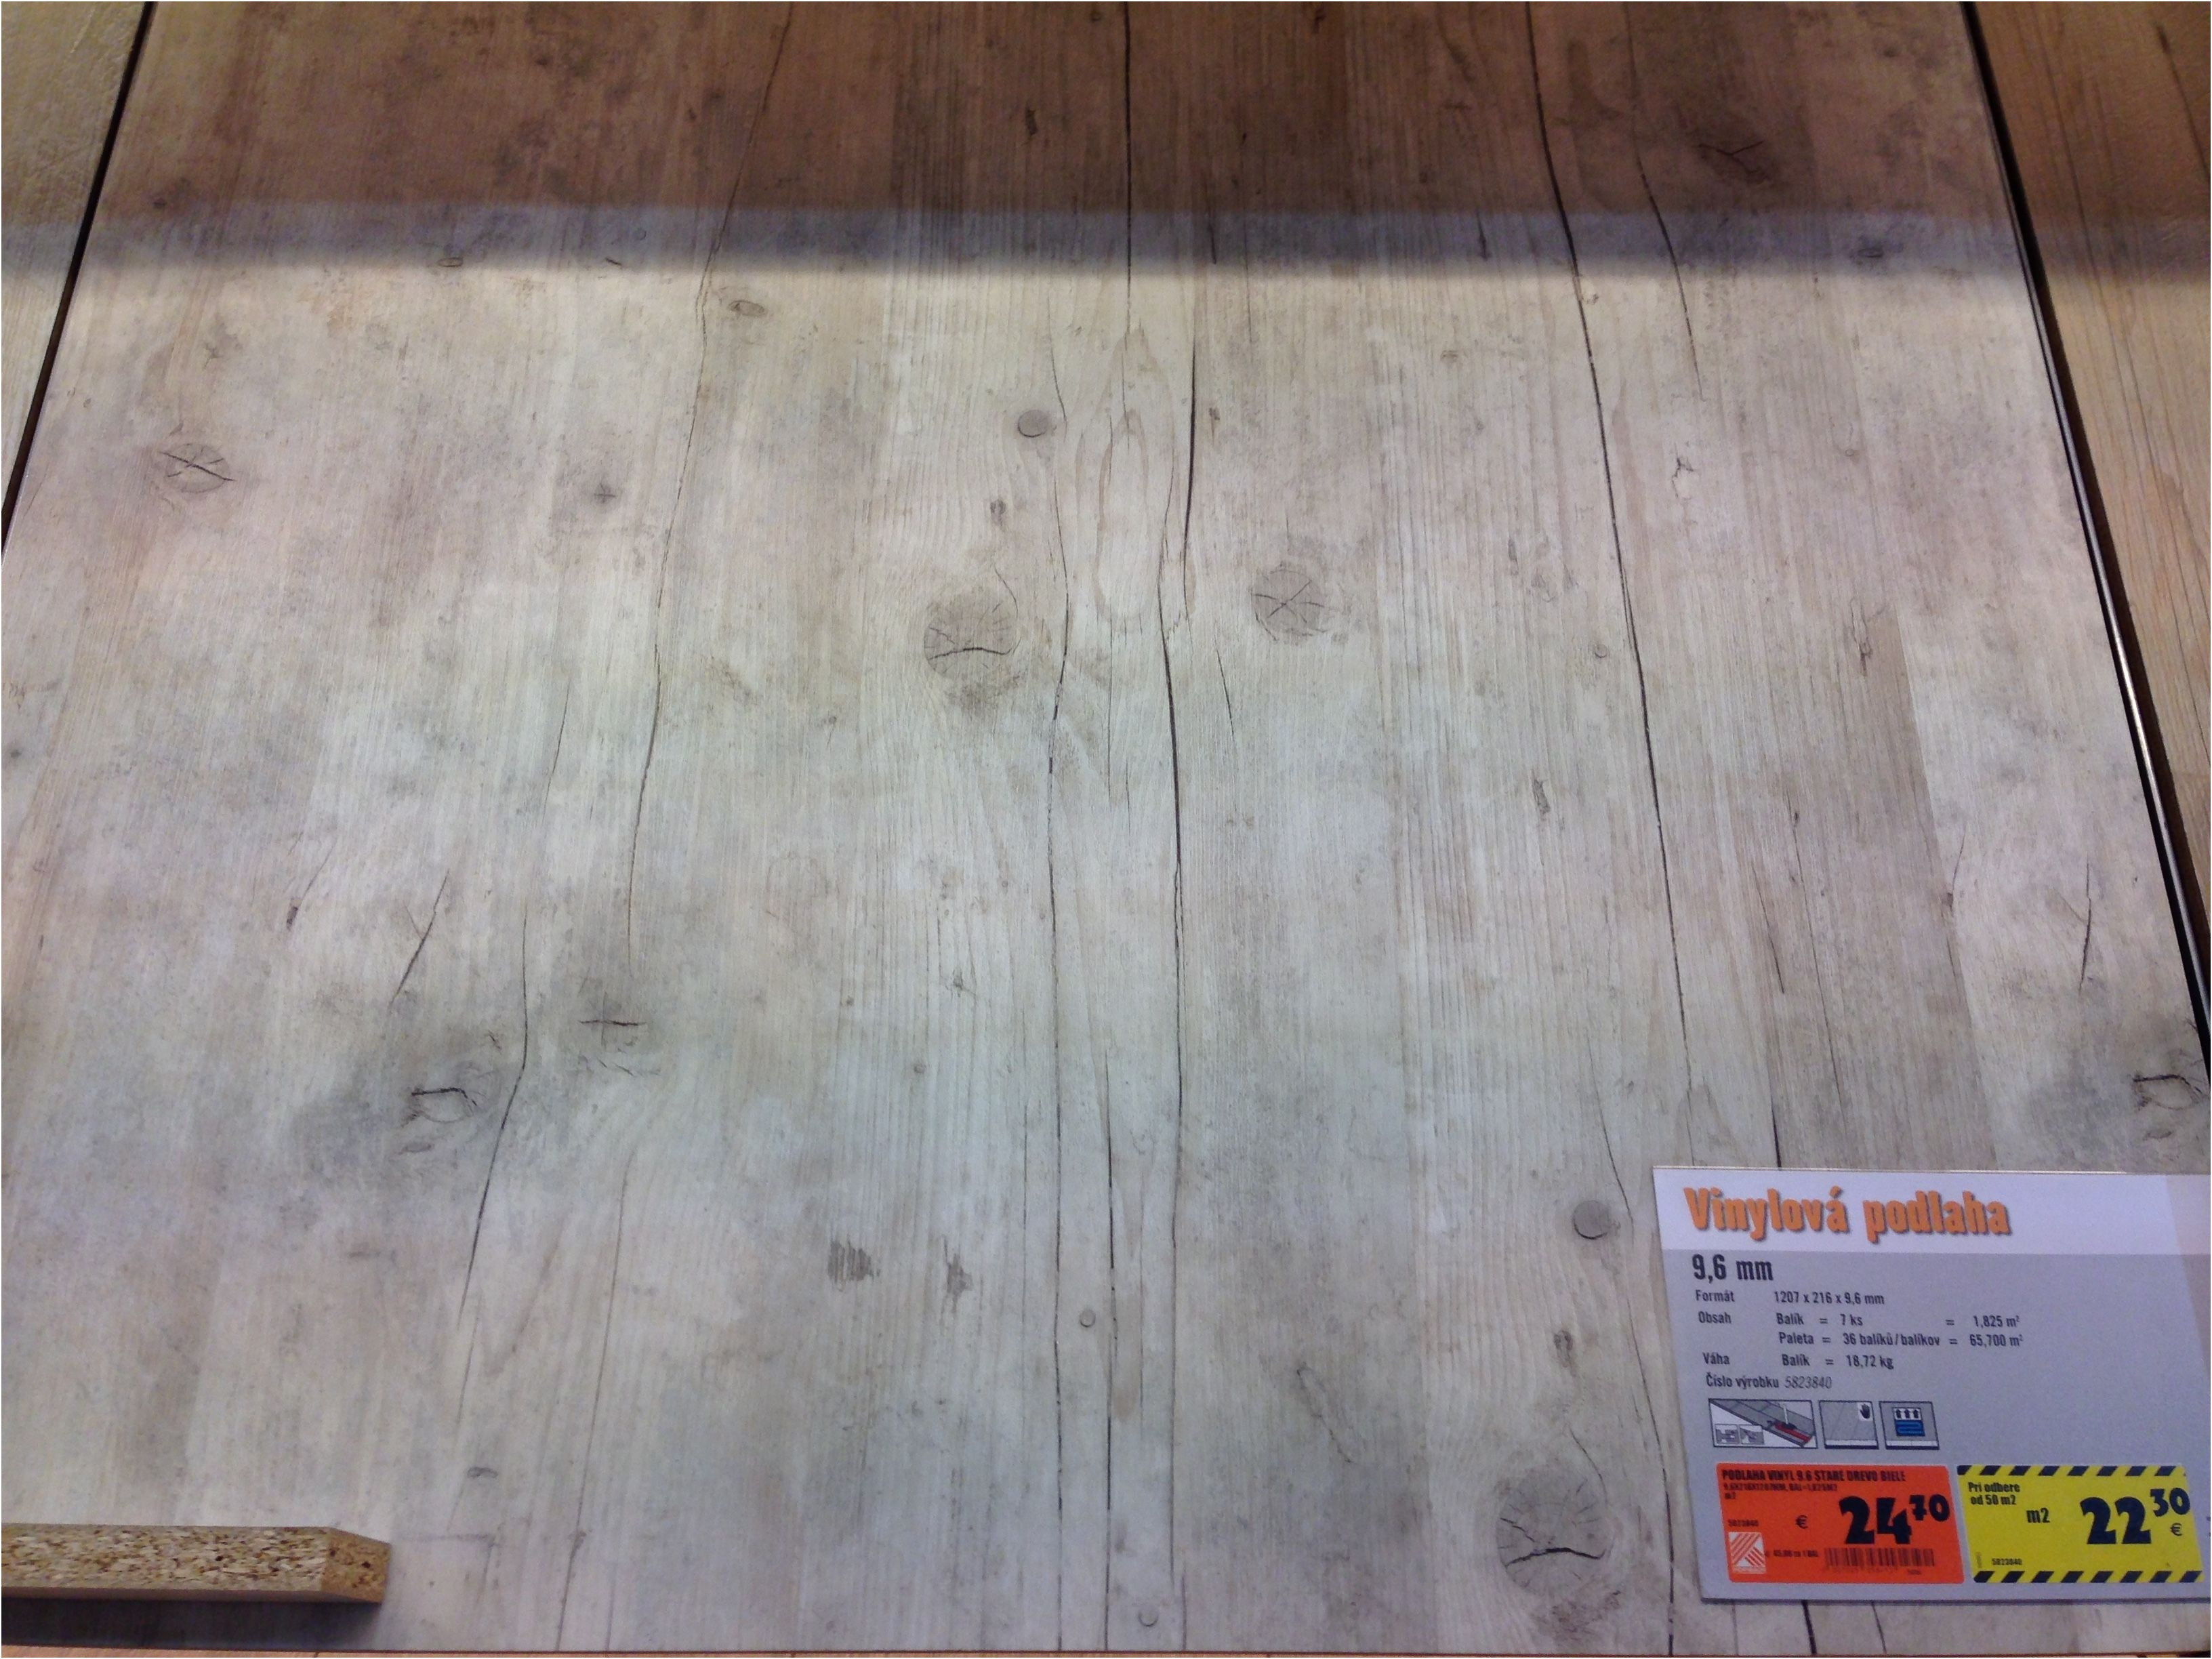 buy hardwood floor nailer of the wood maker page 6 wood wallpaper regarding how to laminate wood flooring unique pin by erik chudy egger ideas of grey laminate wood